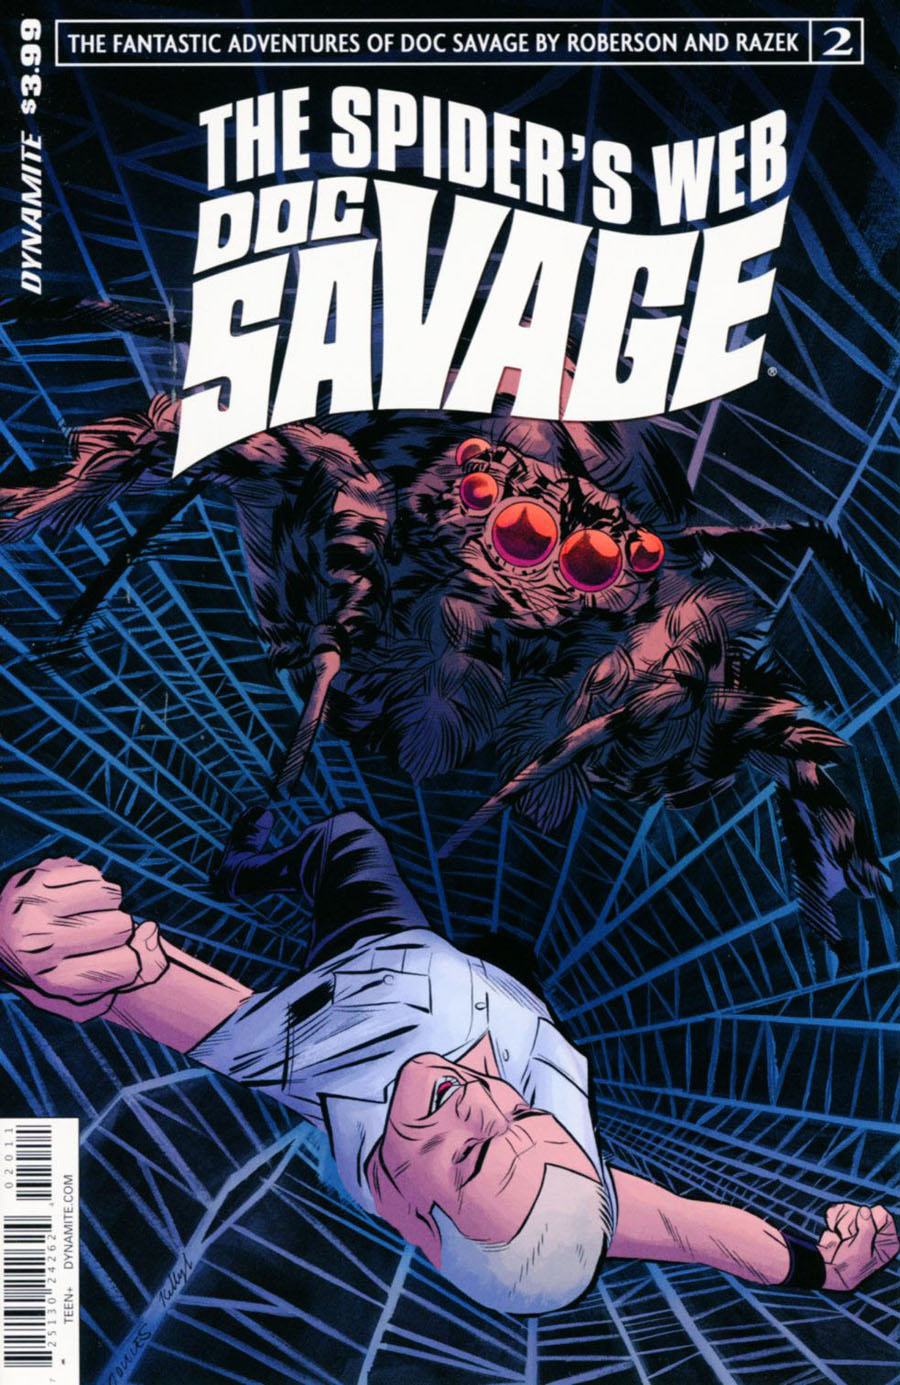 Doc Savage Spiders Web #2 Cover A Regular Wilfredo Torres Cover